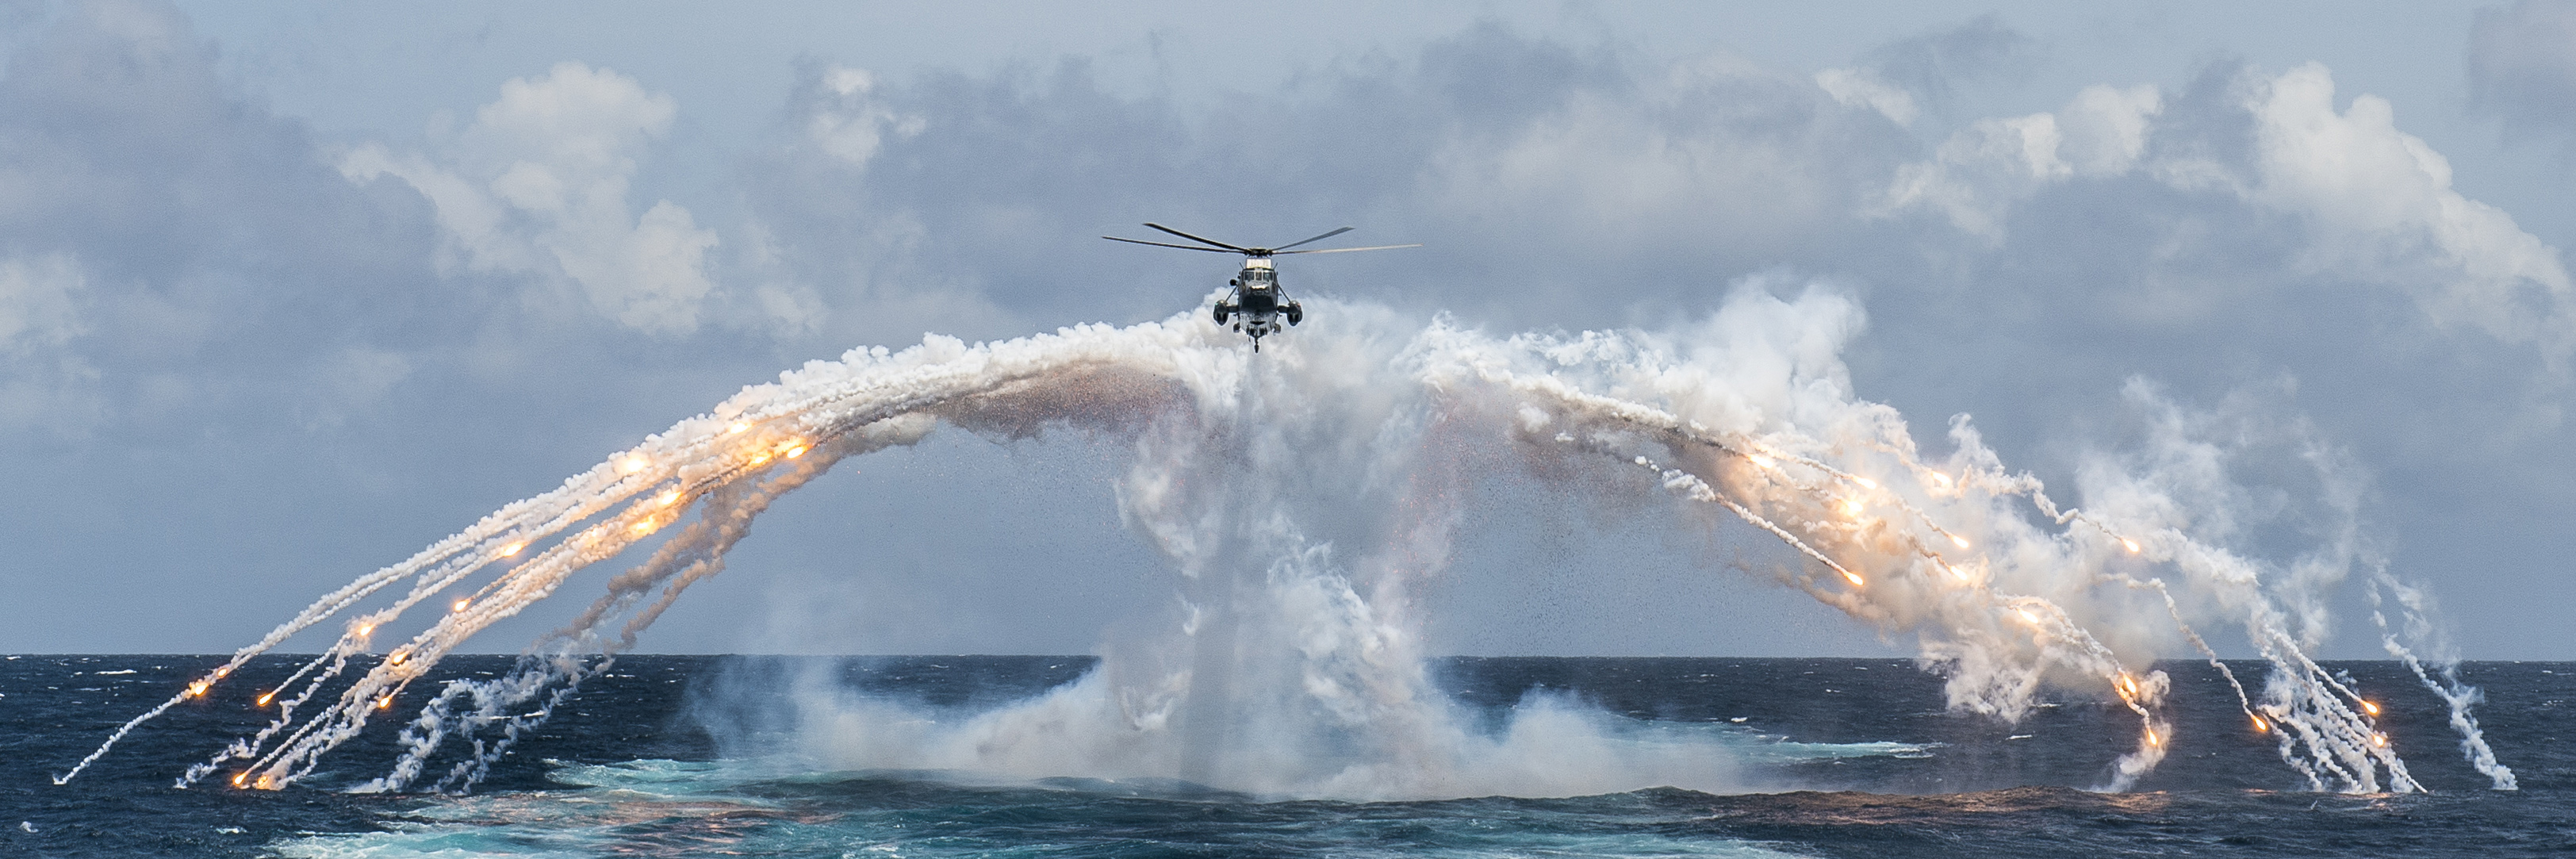 An example of MCpl Bastien's work: Her Majesty's Canadian Ship Regina's CH-124 Sea King helicopter deploys flares during routine flight operation in the Indian Ocean on August 14, 2014.